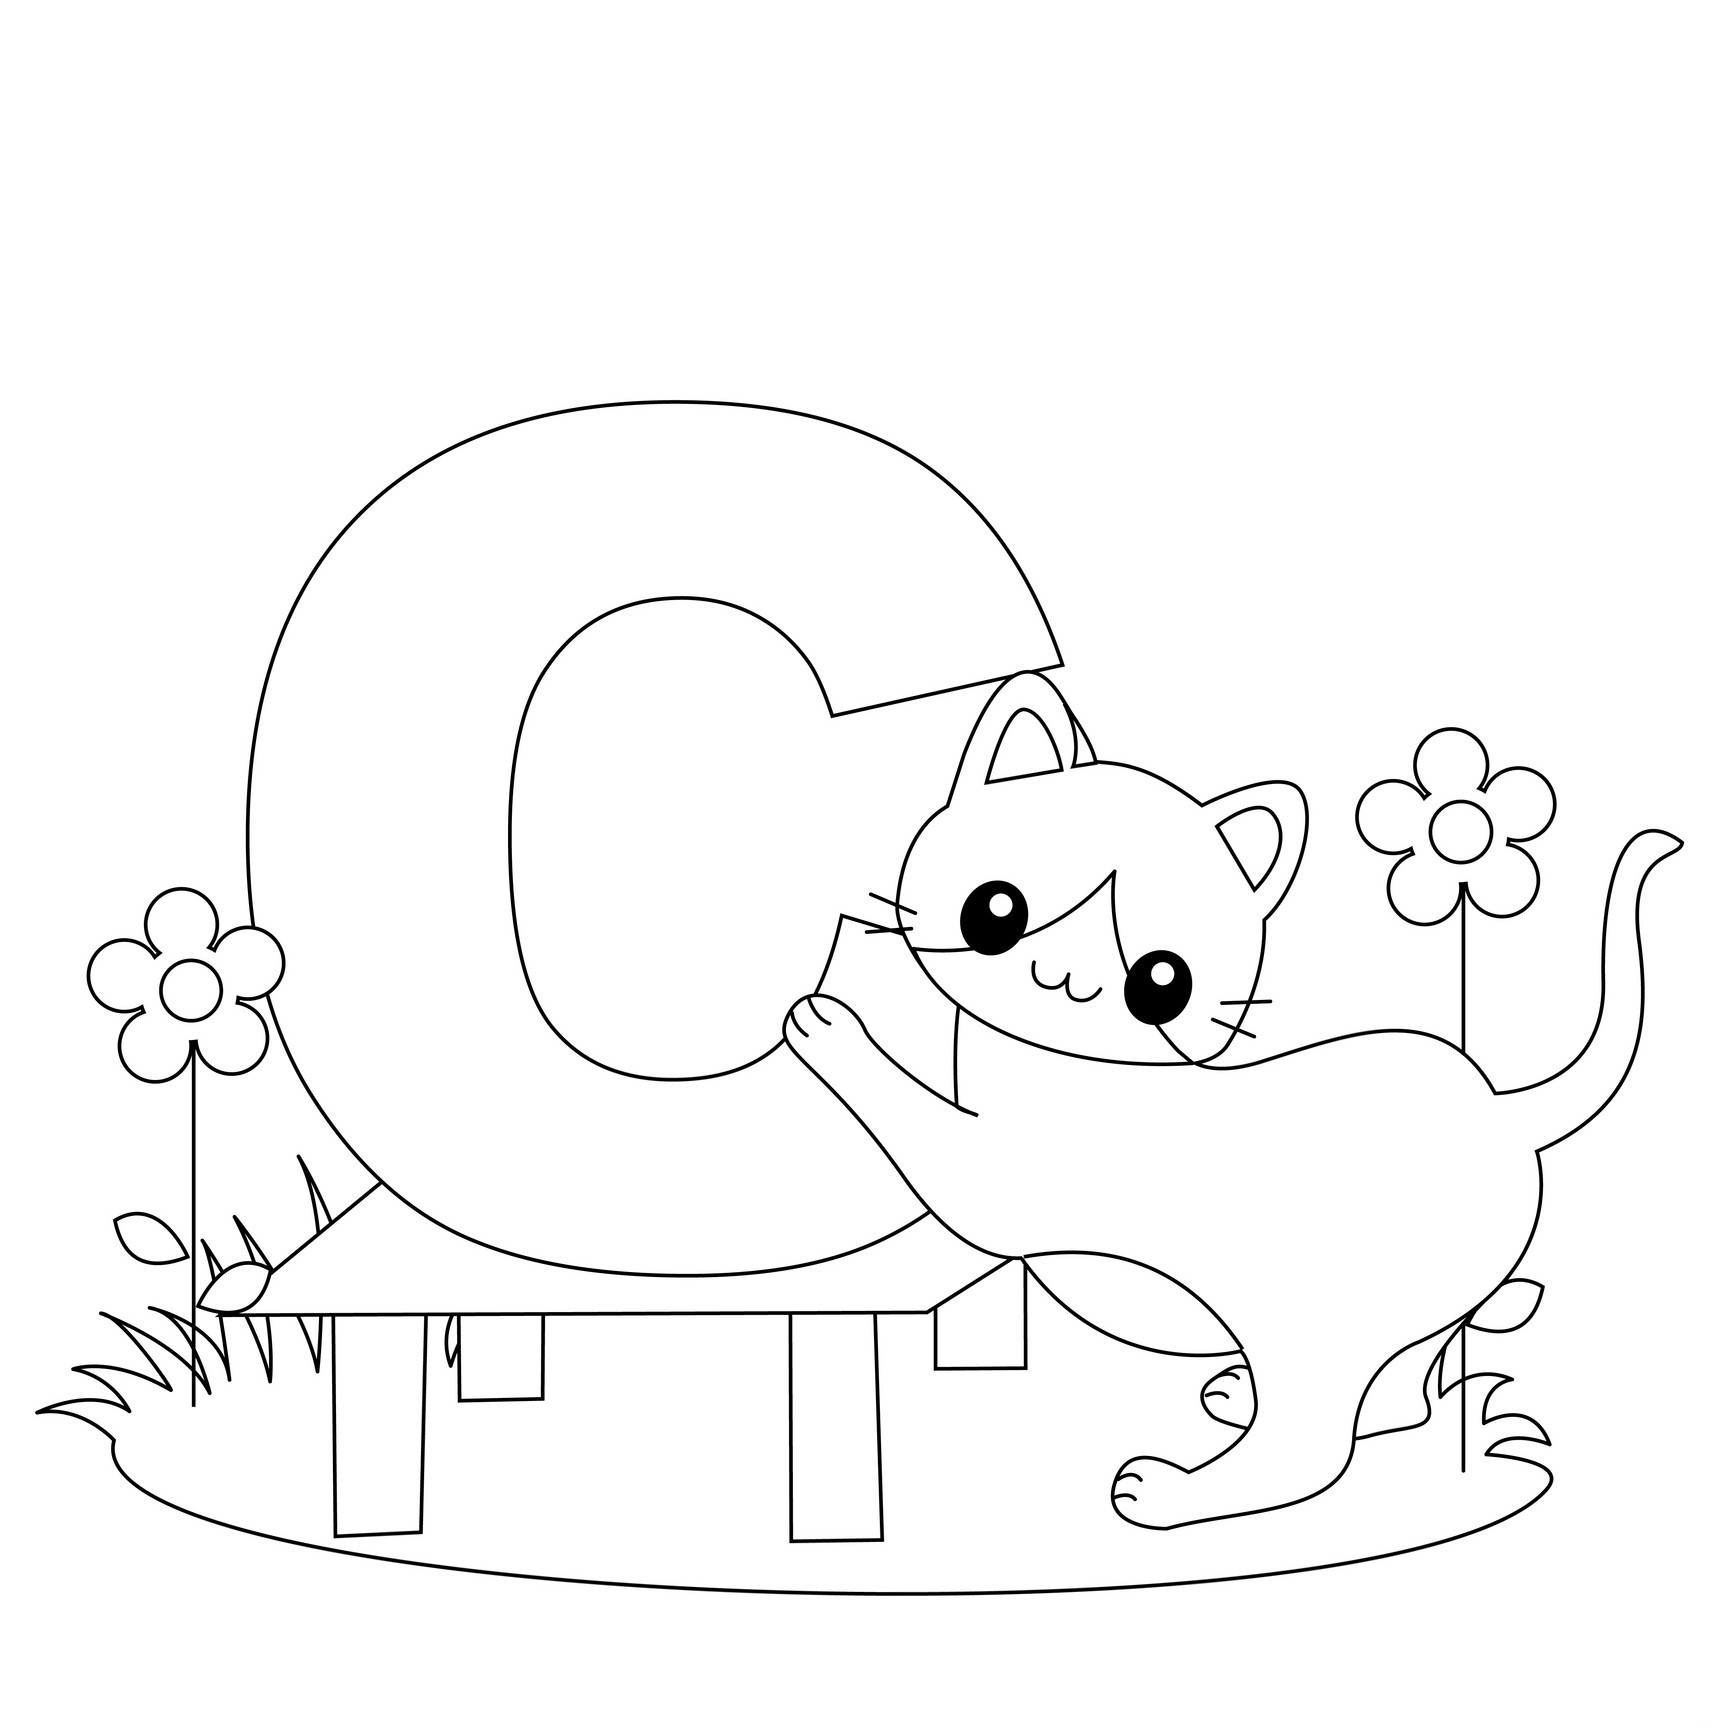 colouring pictures of alphabets fileclassic alphabet chart at coloring pages for kids alphabets pictures colouring of